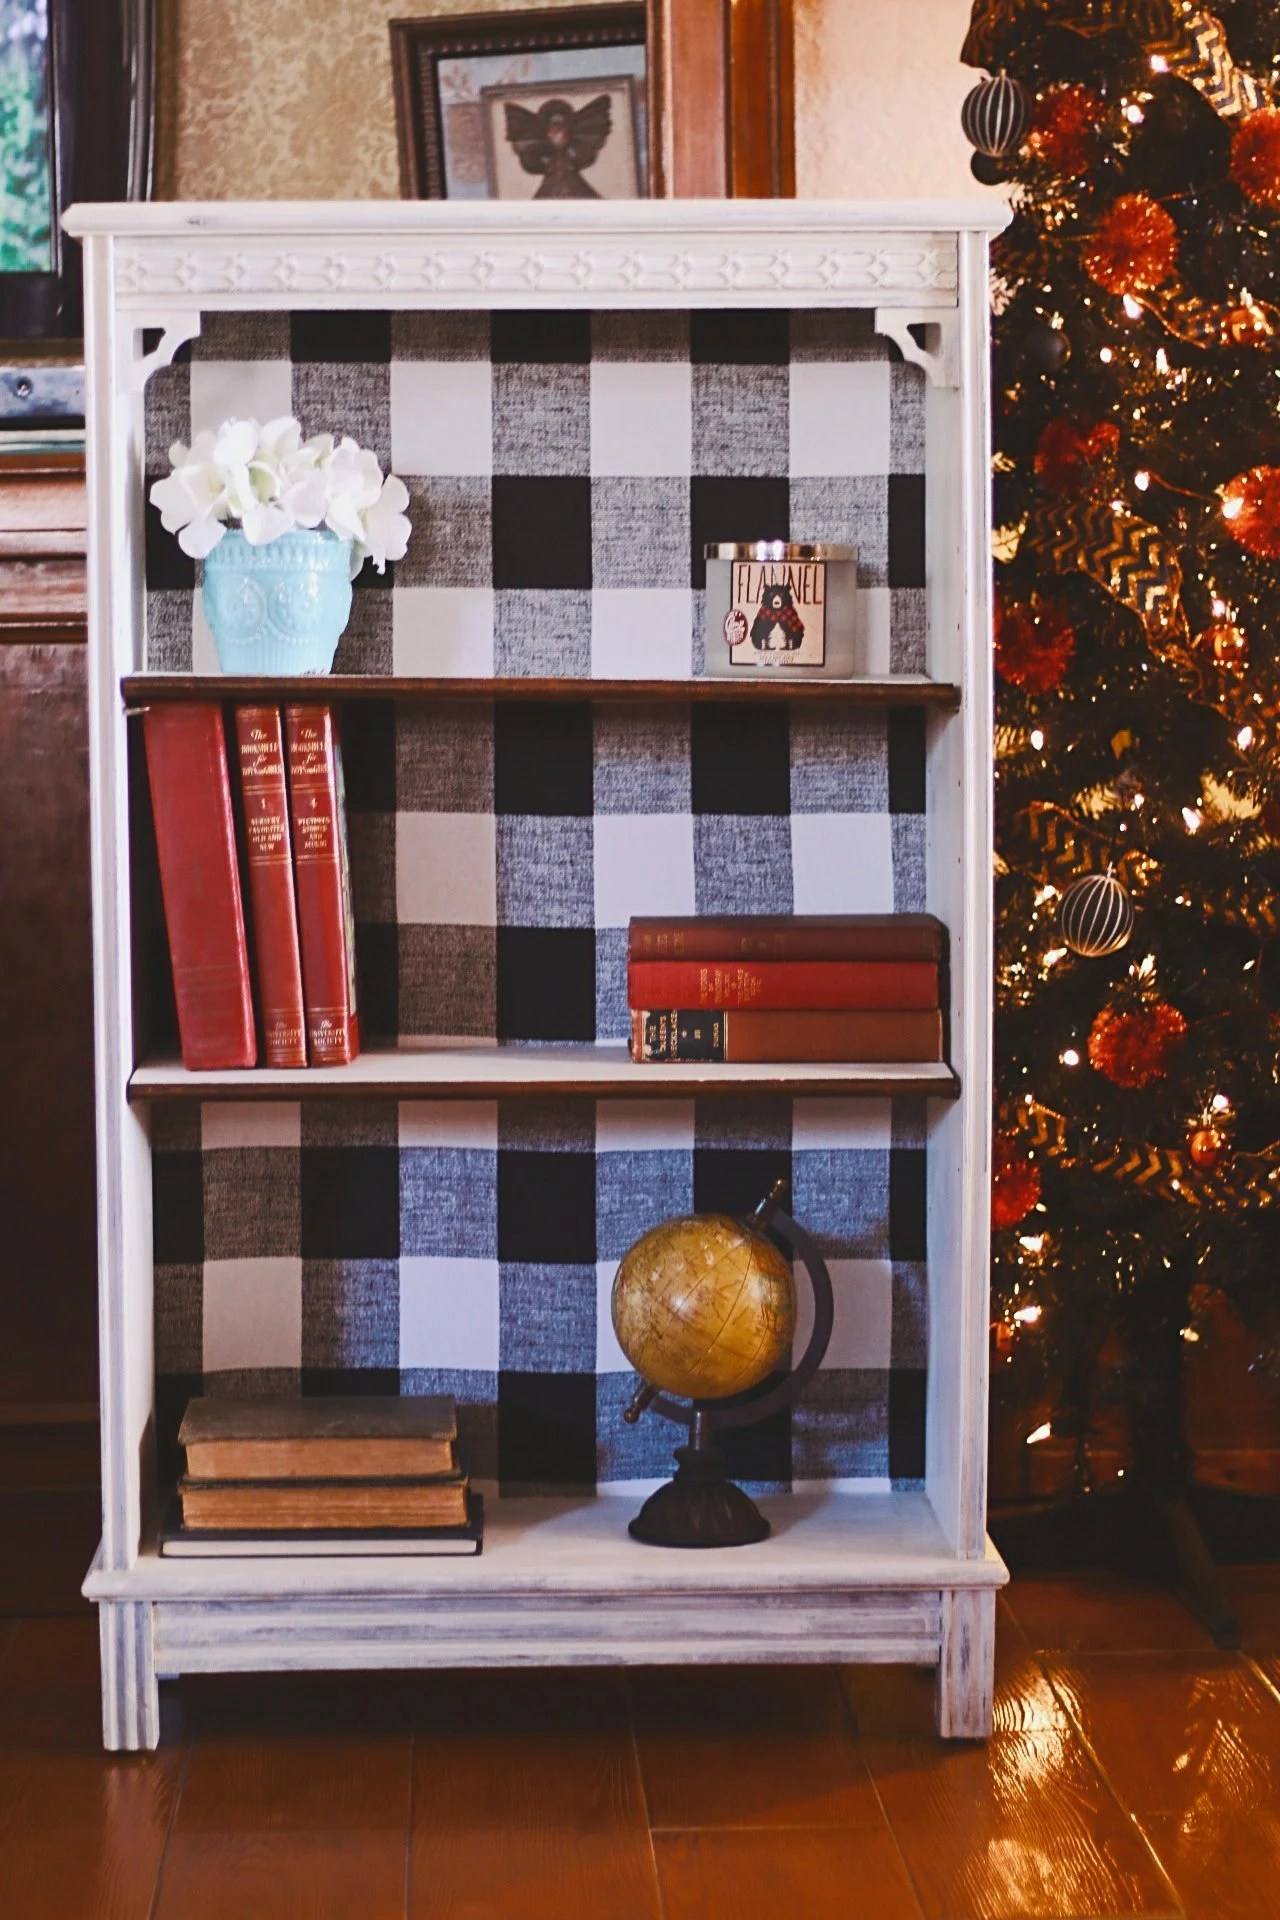 Vintage Bookcase Buffalo Plaid Bookshelf Antique Bookshelf Vintage Bookshelf Farmhouse Rustic Decor